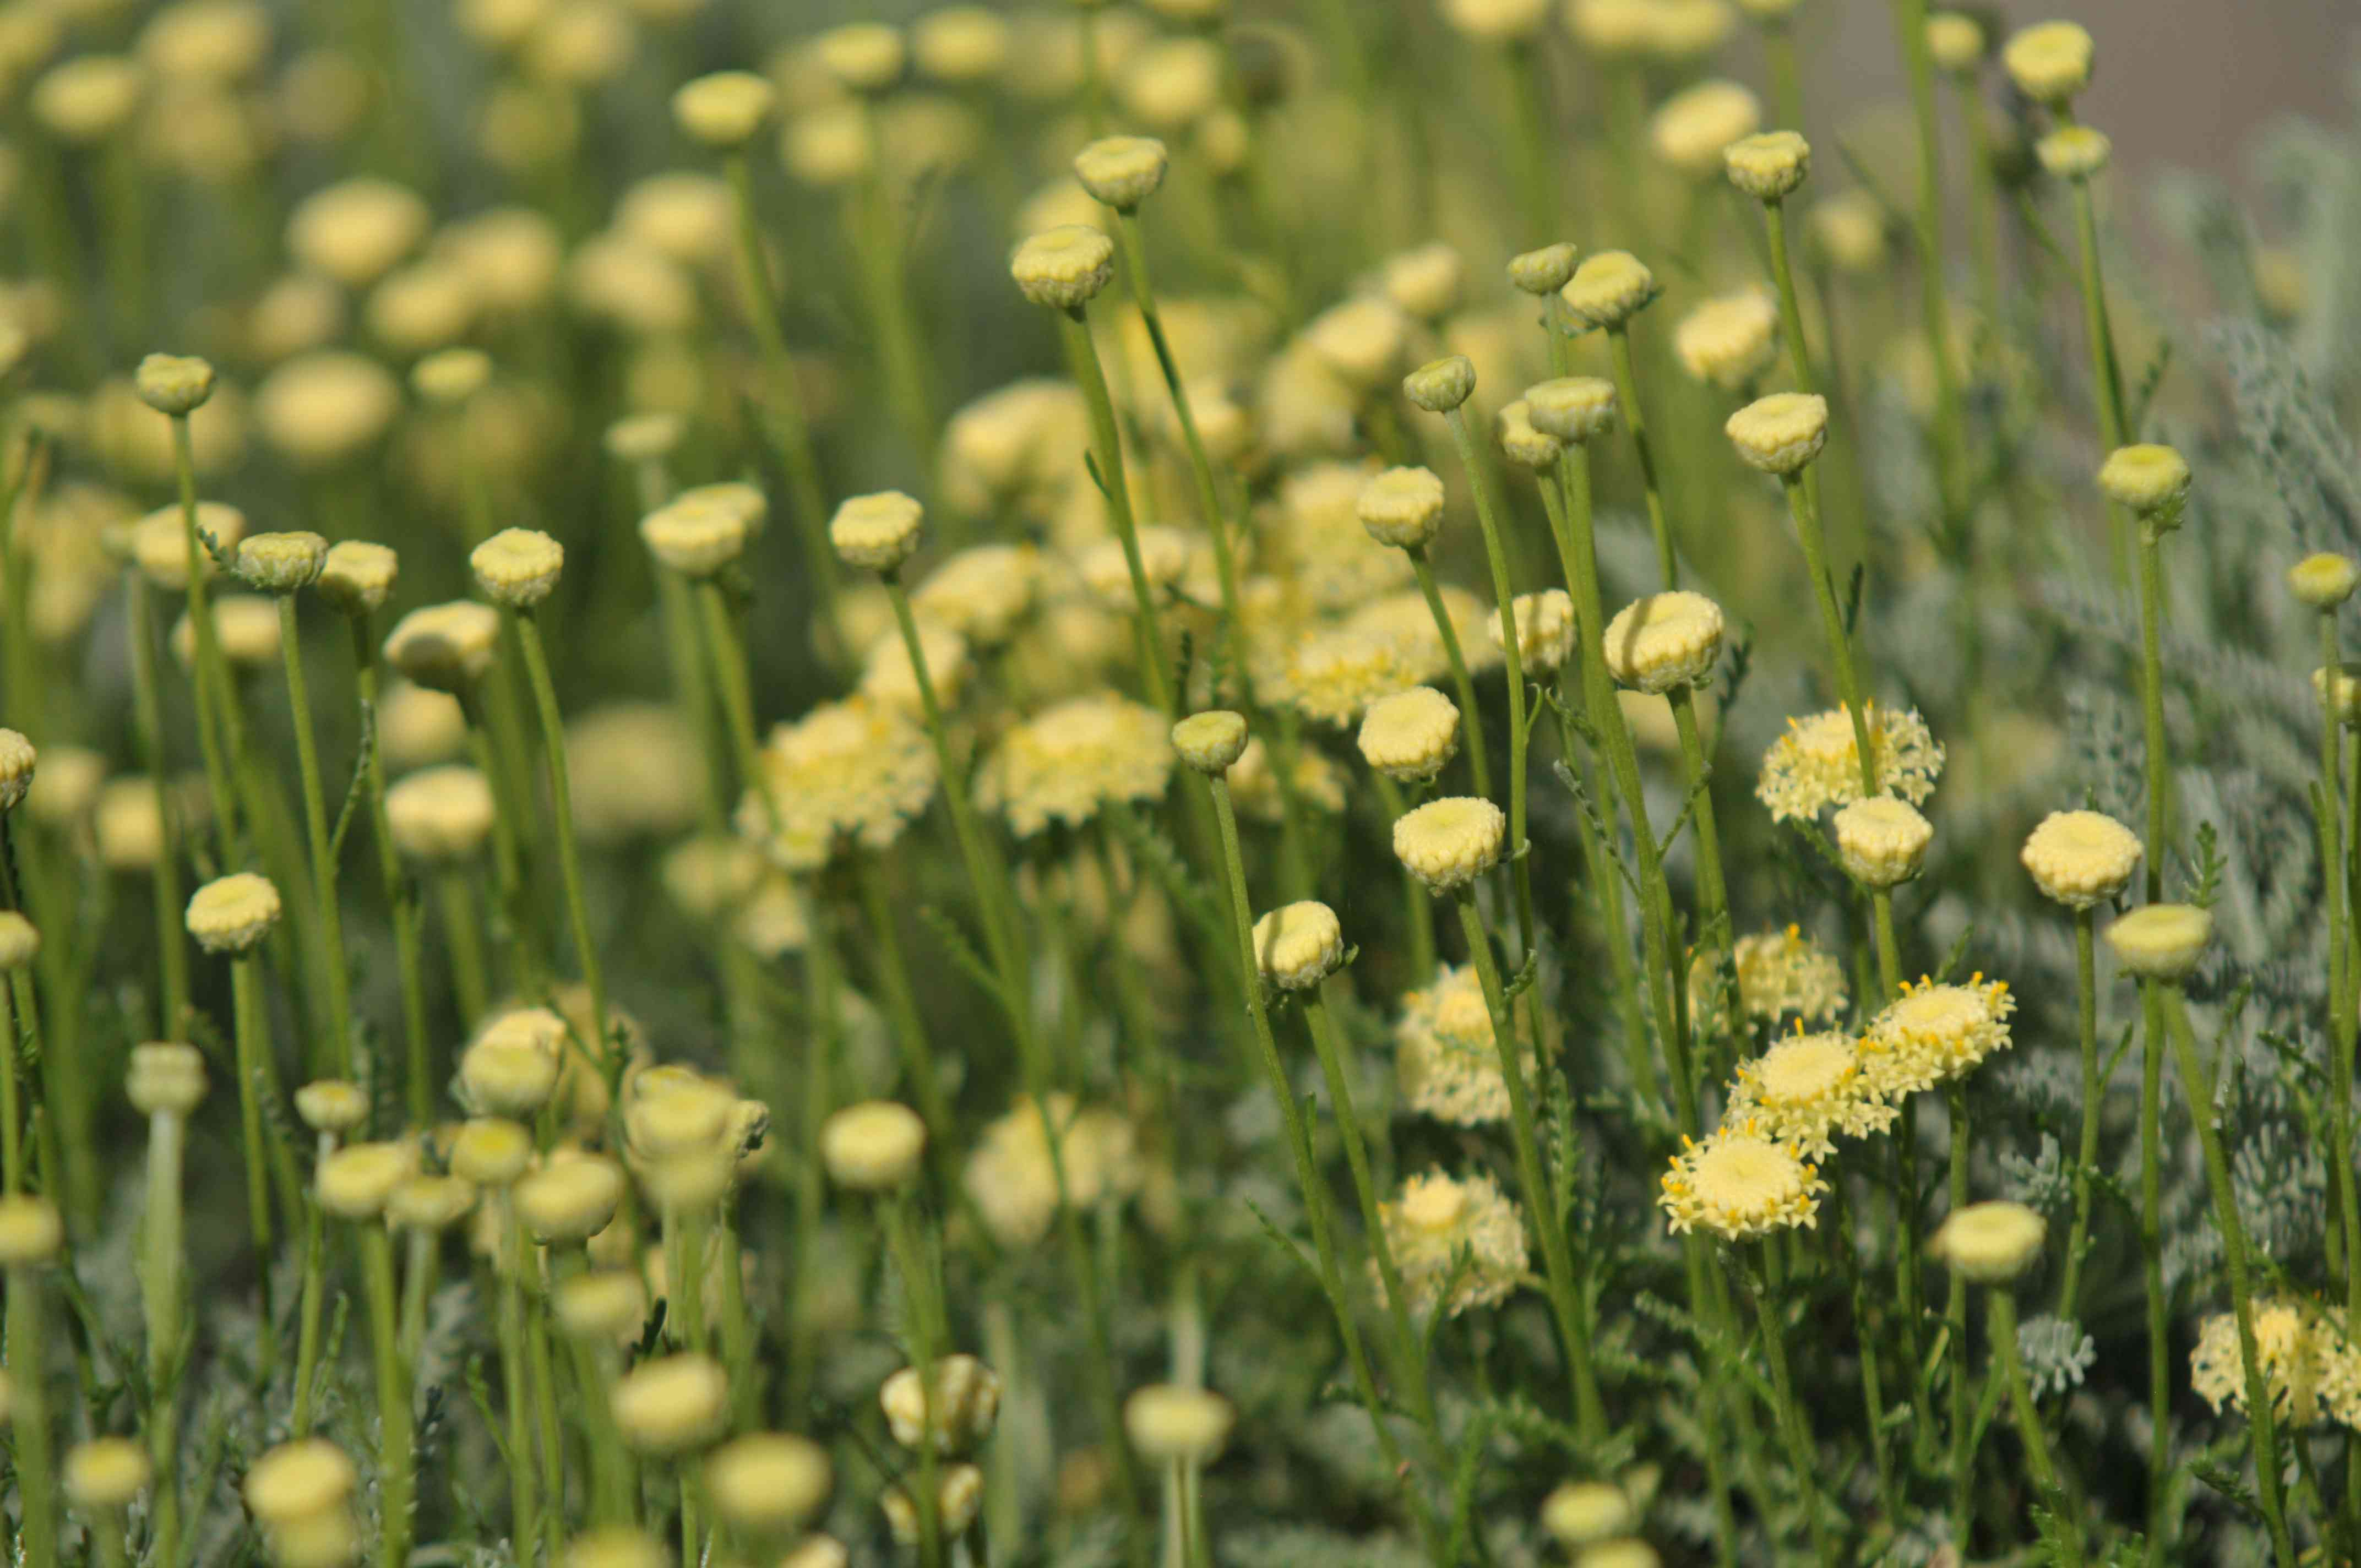 Lavender cotton plant with small yellow flower blooms closeup